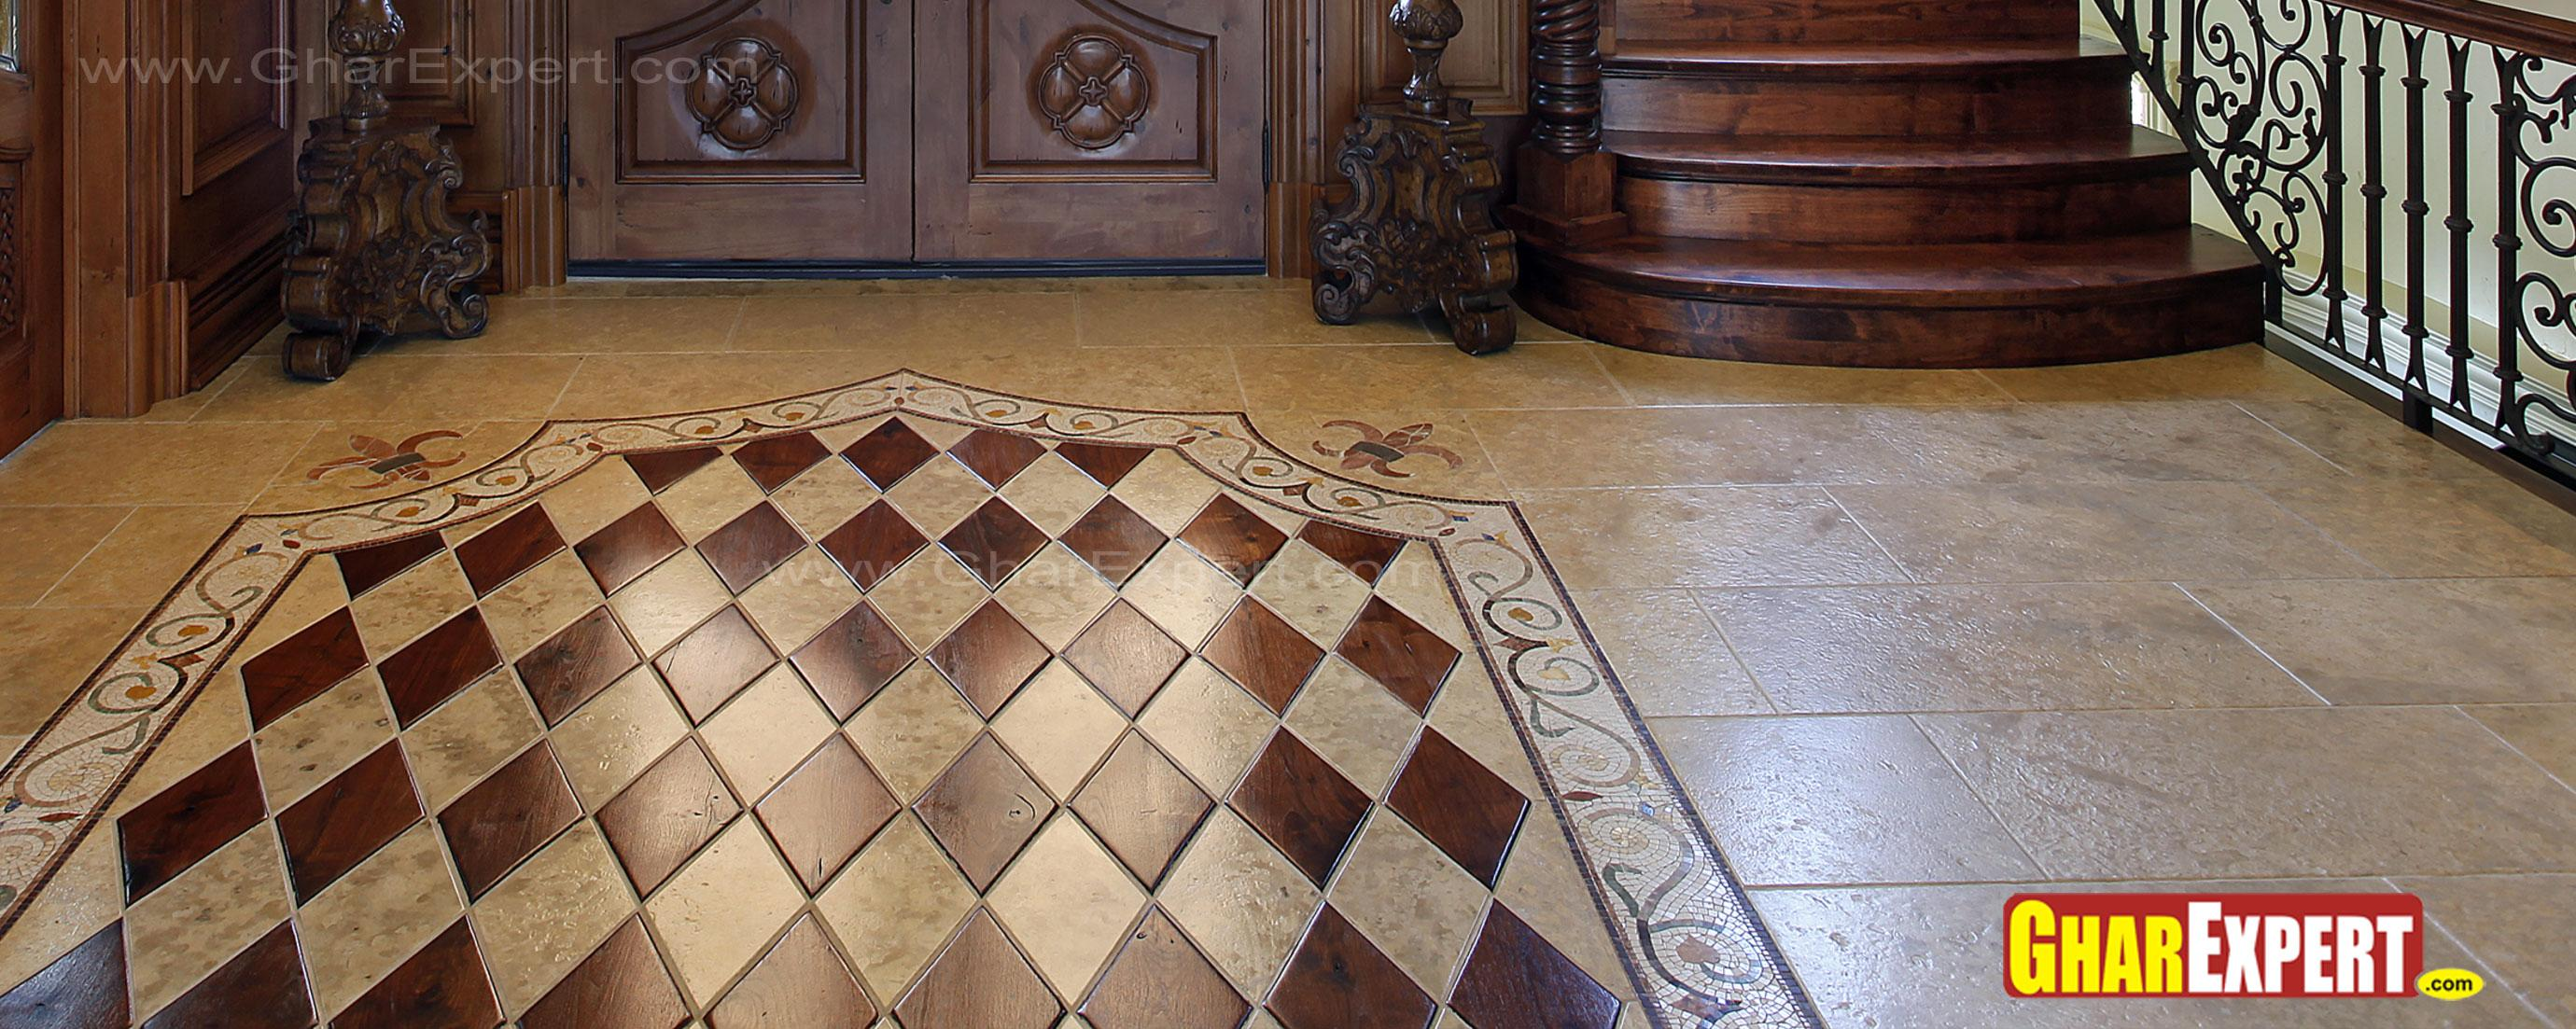 Marble floor pattern for lobby....